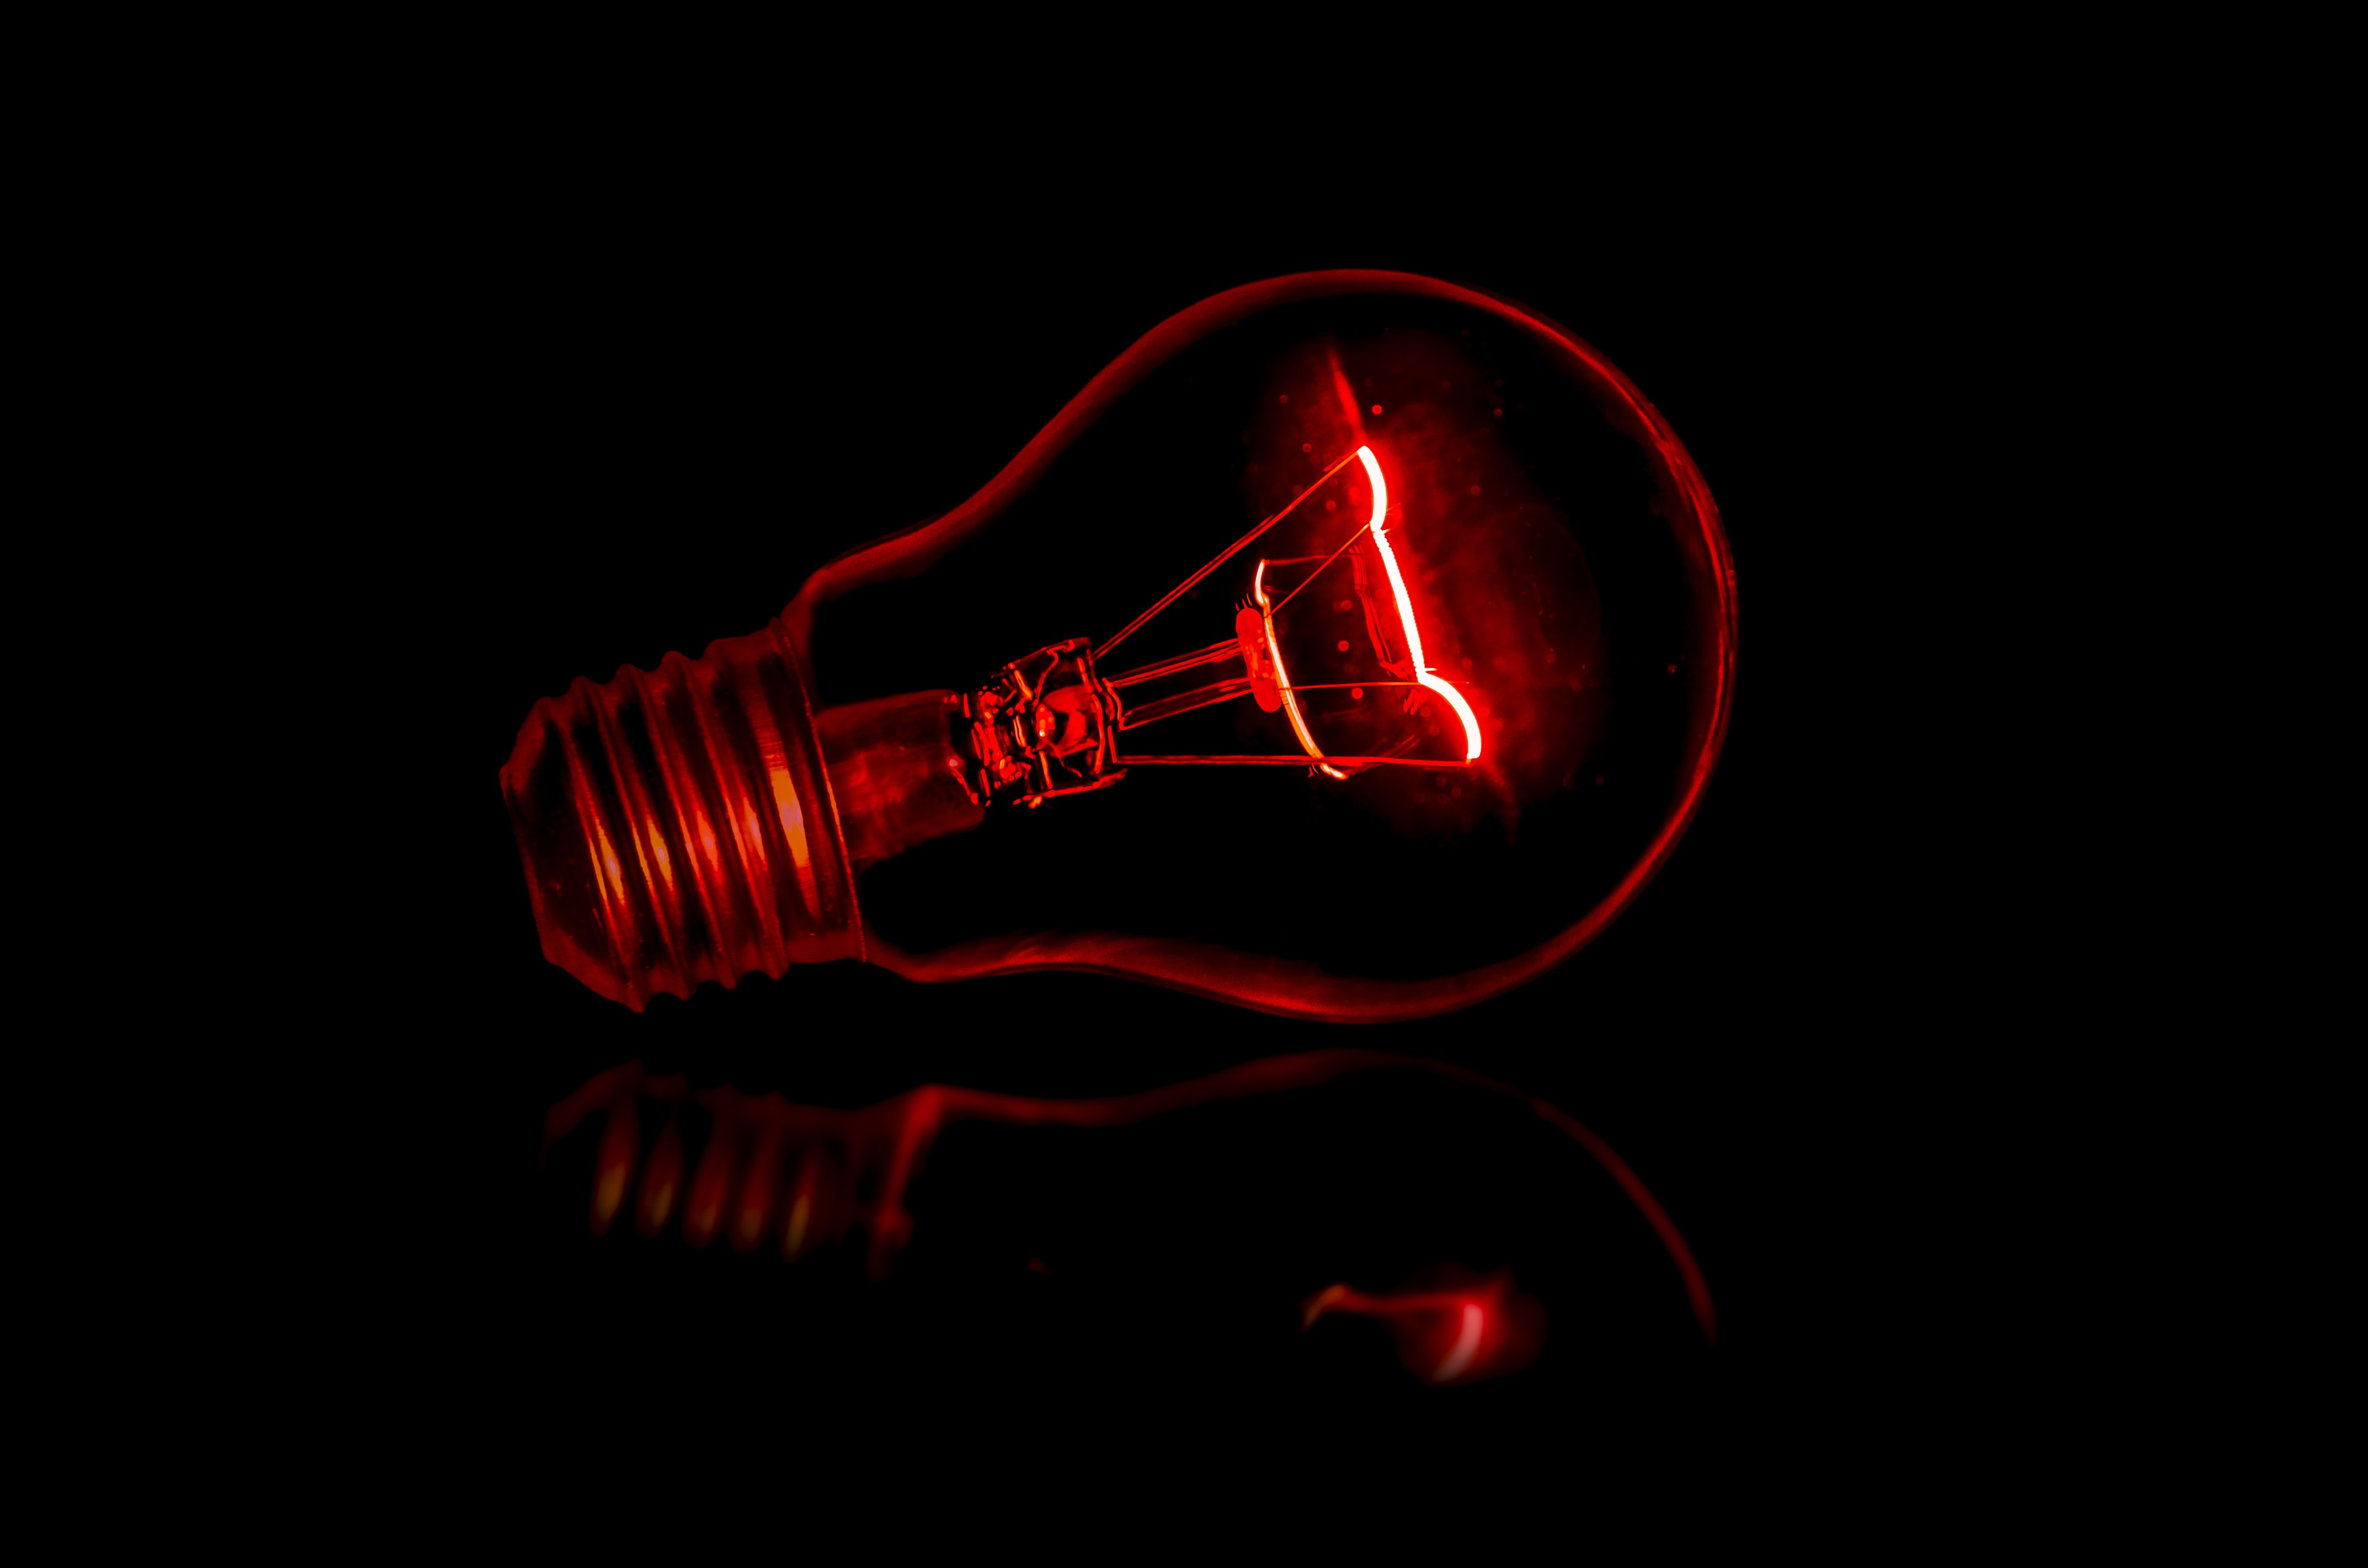 Photo of a lightbulb with red filament inside. by Terry Vlisidis.